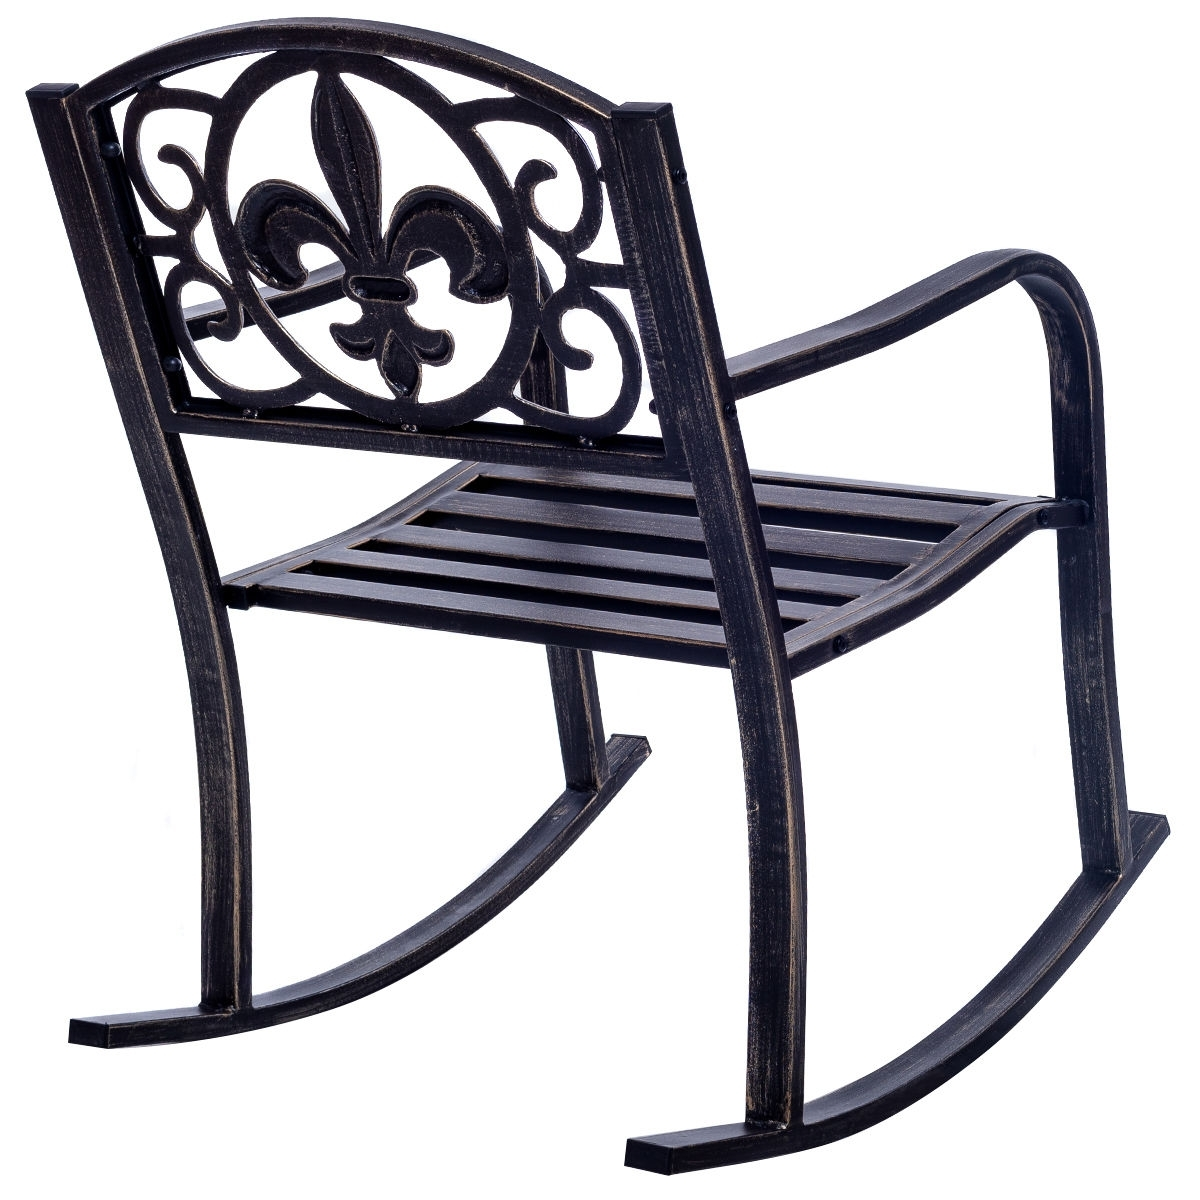 Costway: Costway Patio Metal Rocking Chair Porch Seat Deck Outdoor With Latest Patio Metal Rocking Chairs (View 15 of 15)